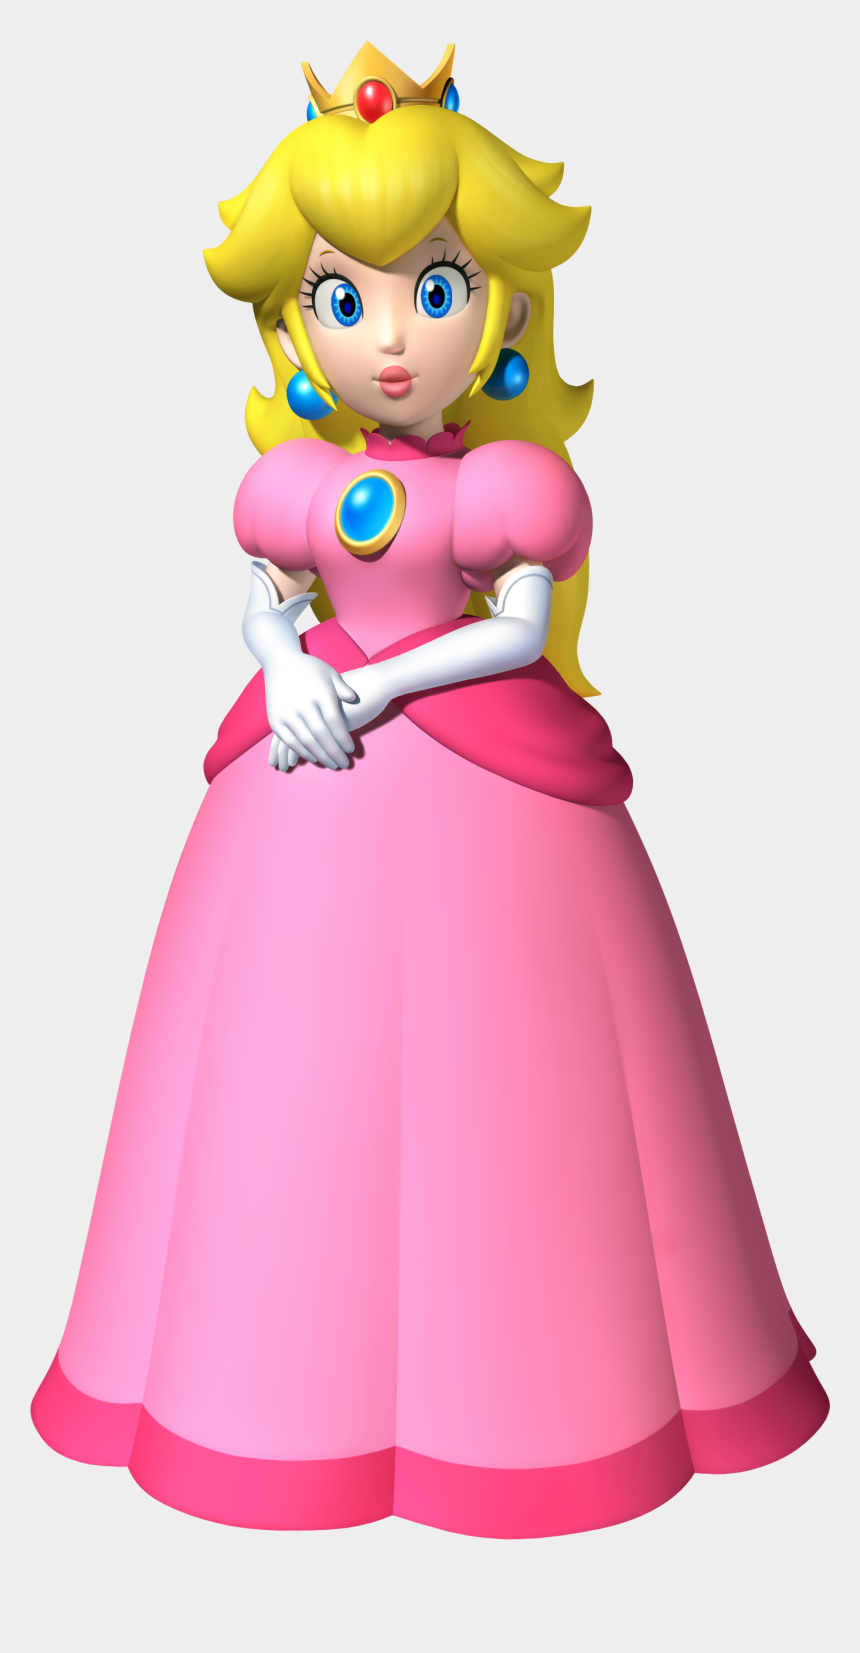 peach clipart, Cartoons - Princess Peach New Super Mario Bros